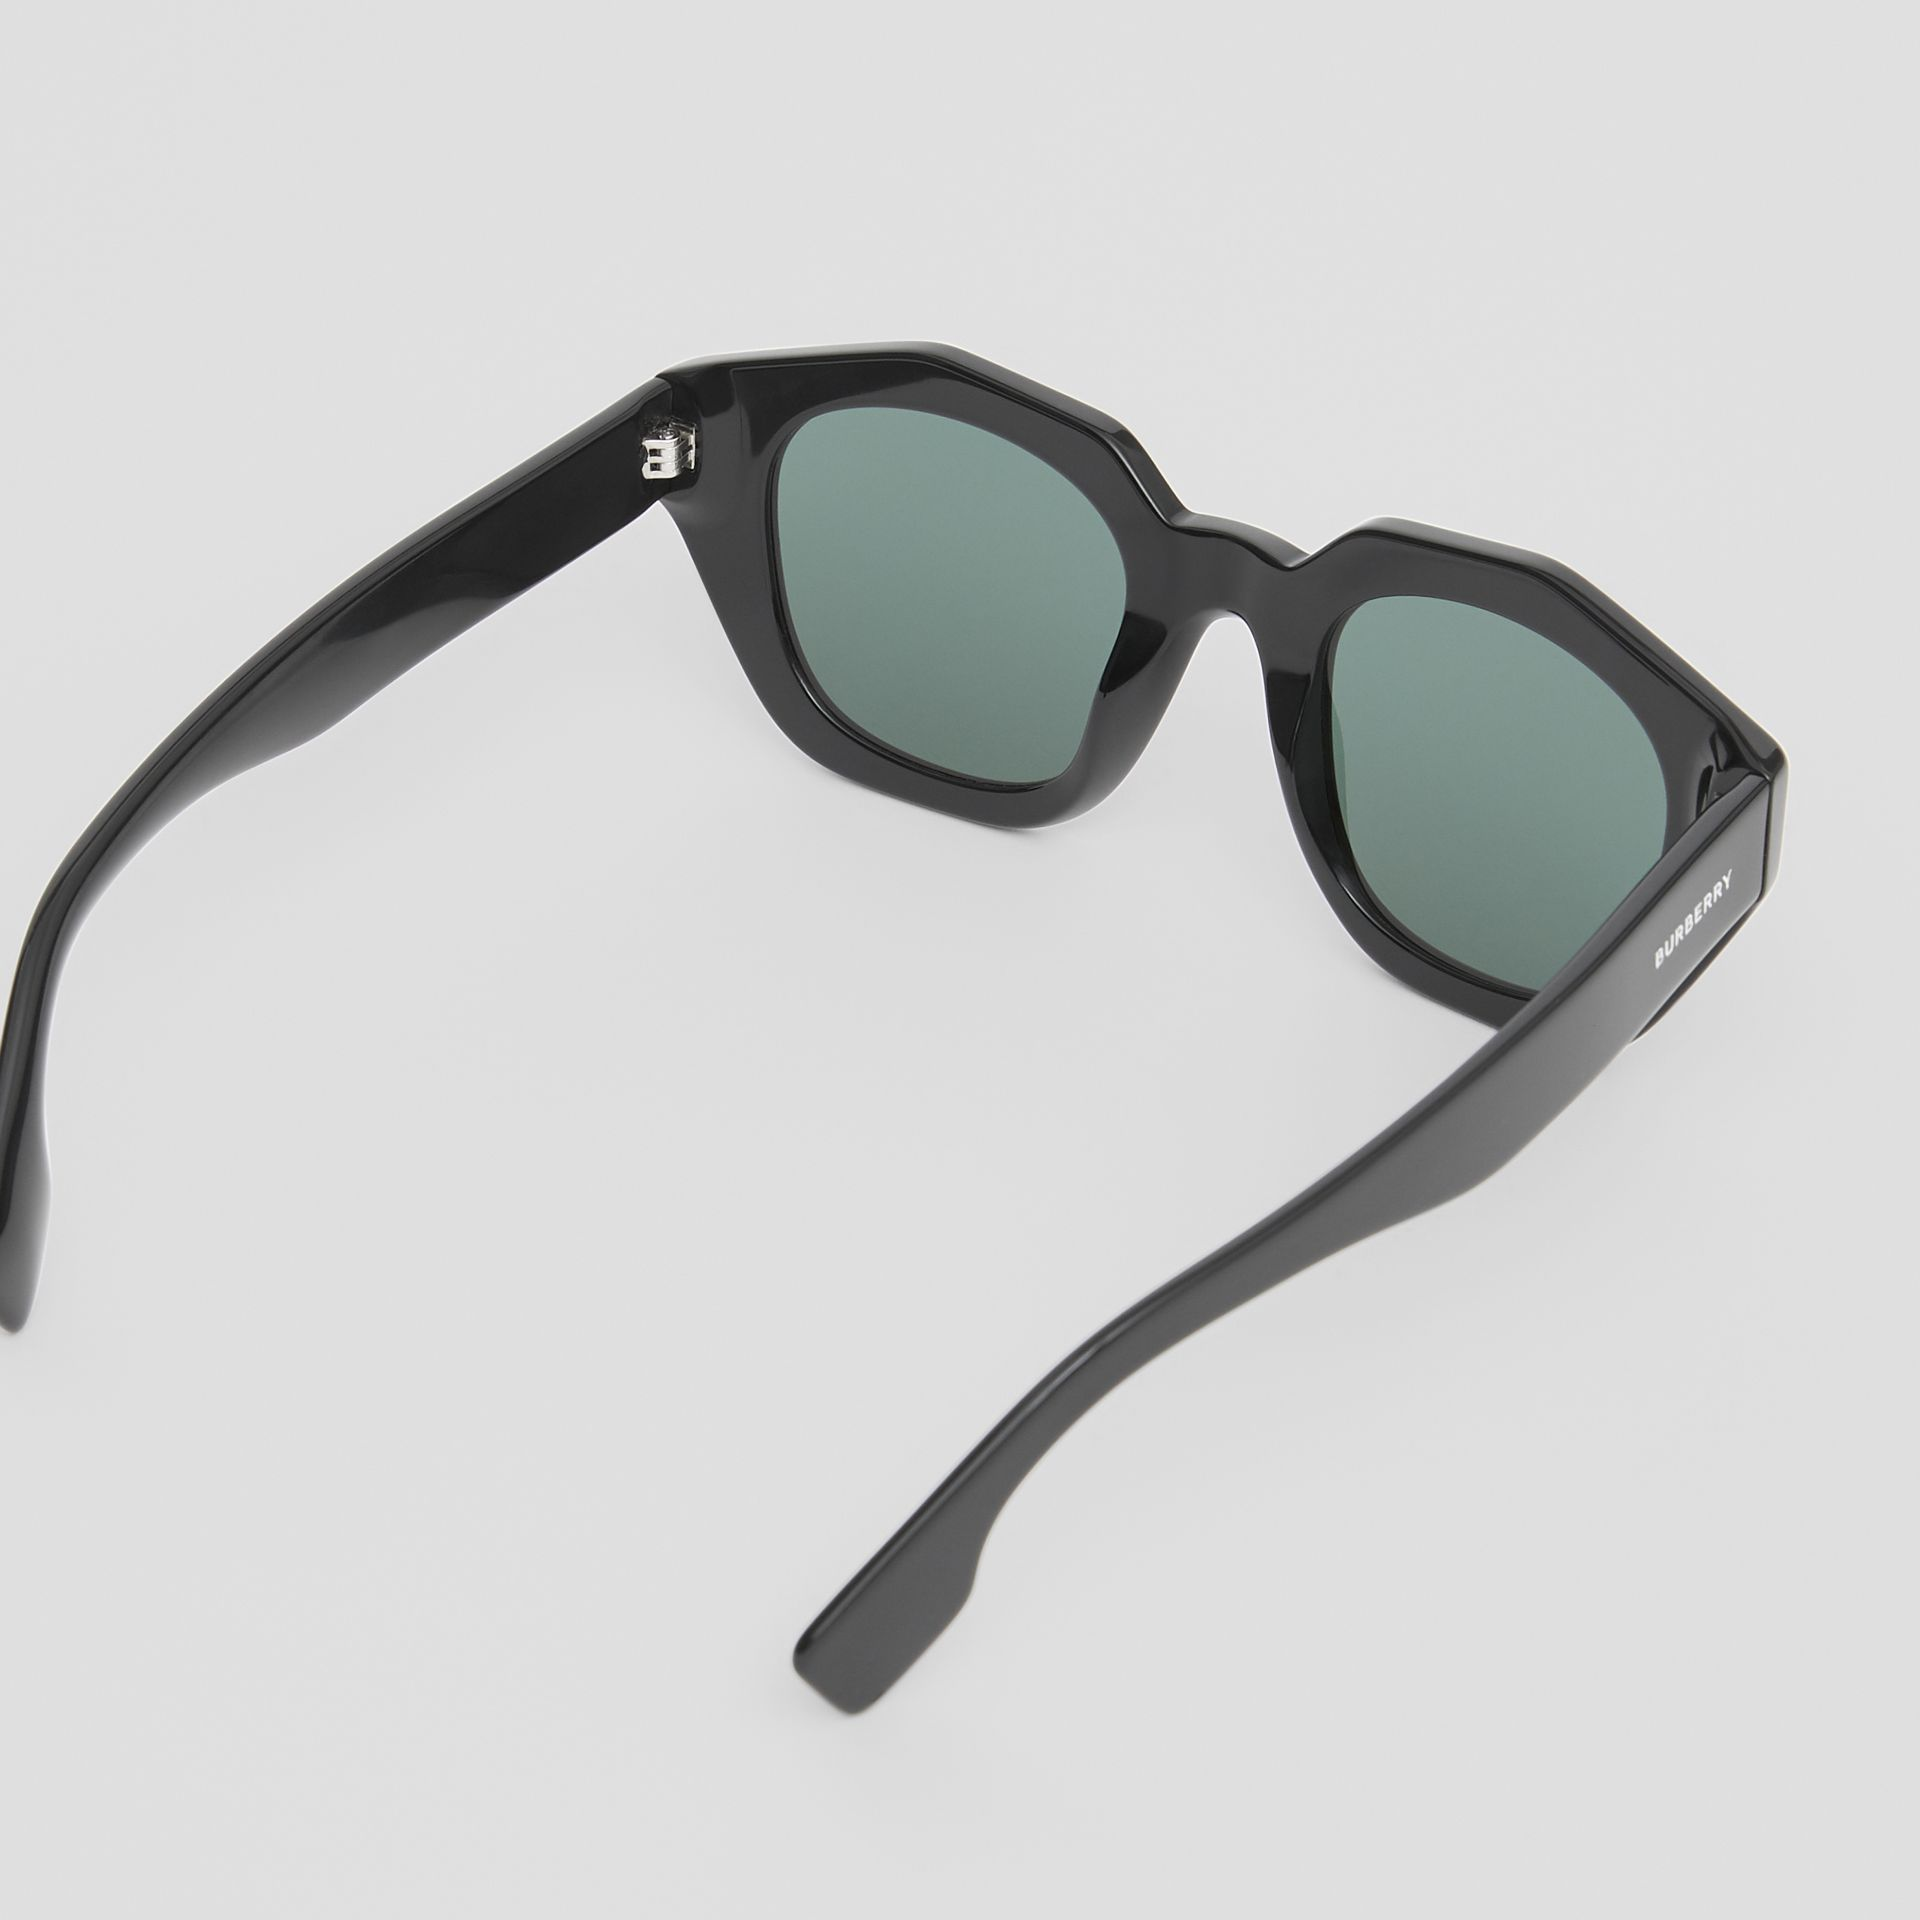 Geometric Frame Sunglasses in Black - Women | Burberry - gallery image 3